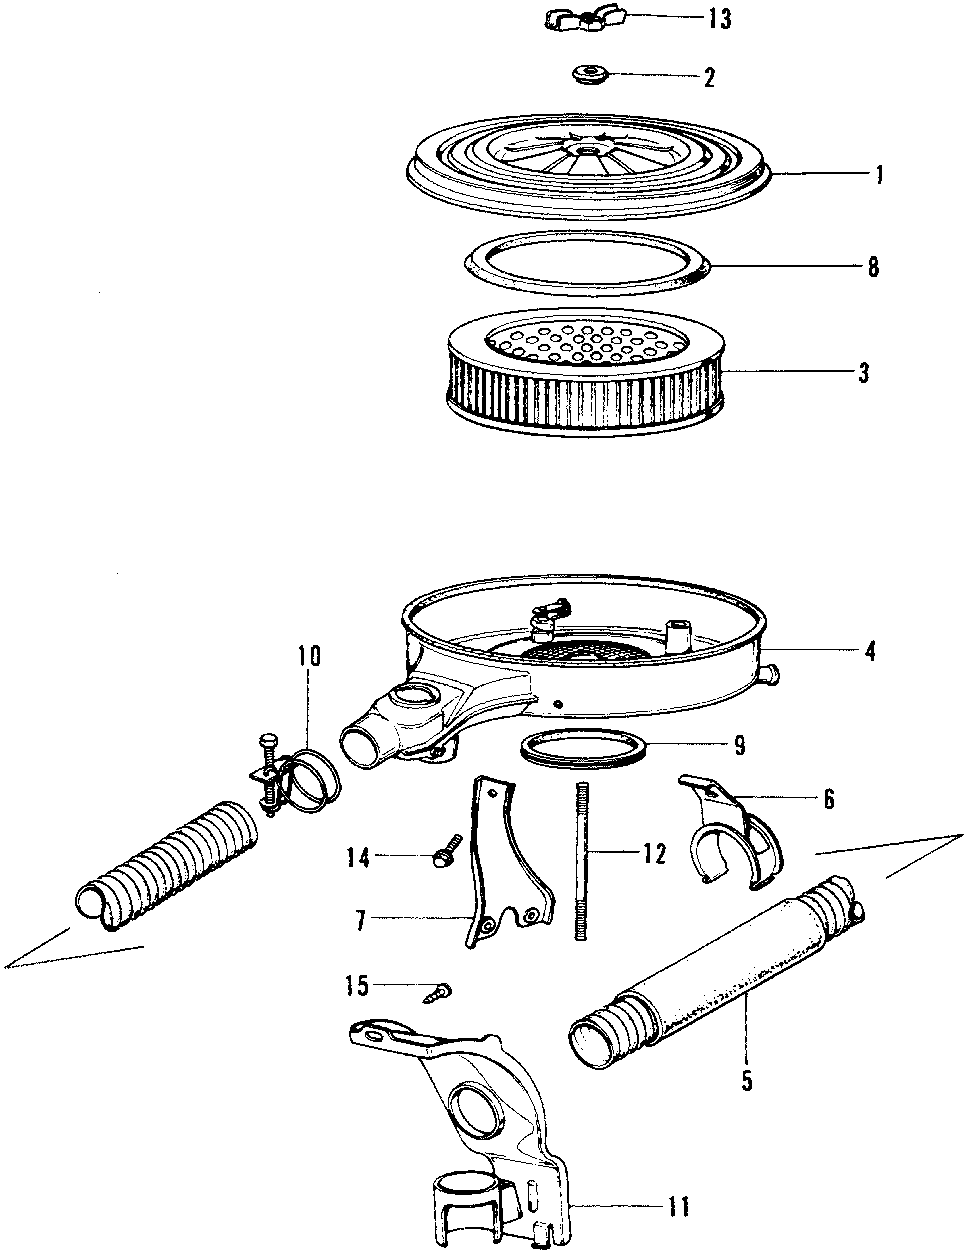 17305-634-000 - CLIP, HOT AIR DUCT